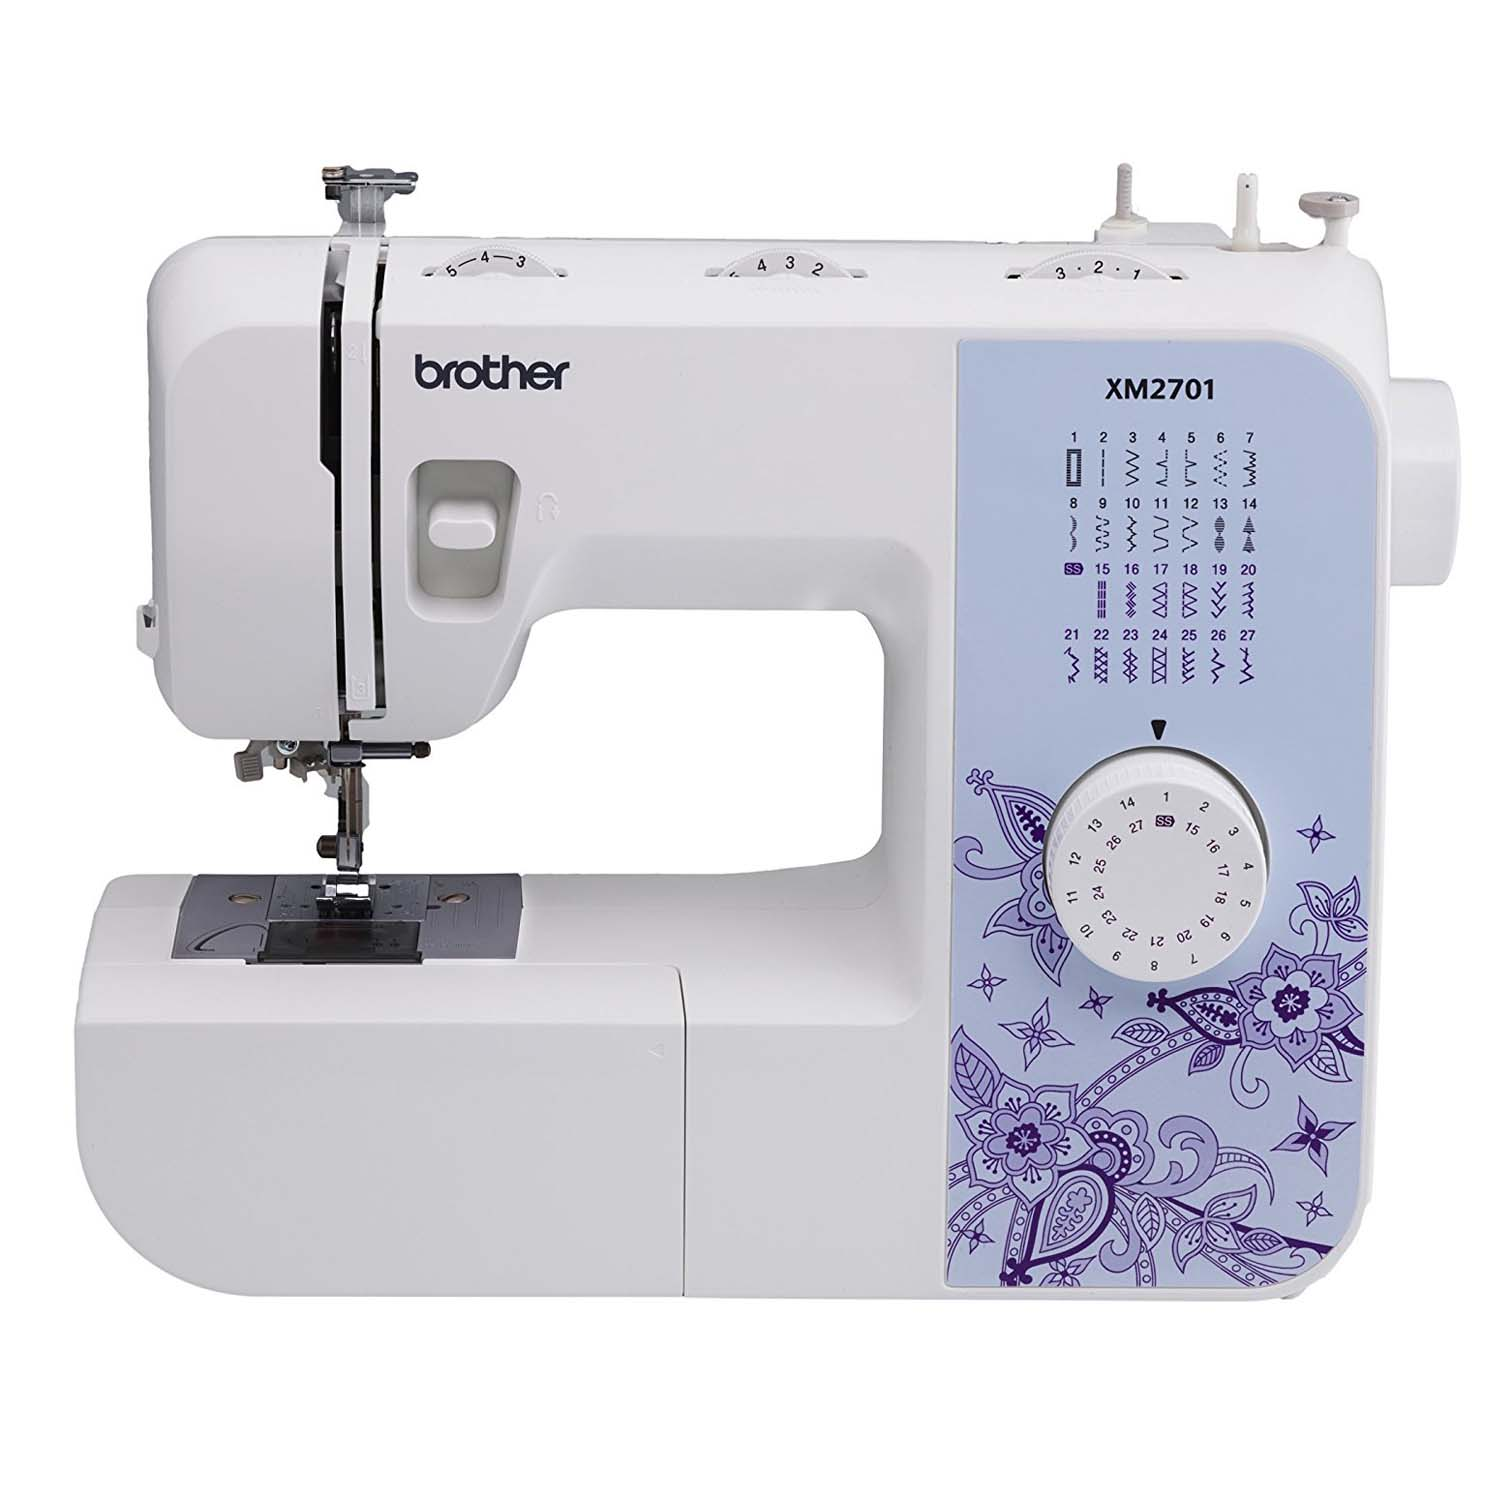 Brother XM2701 Sewing Machine for Beginners